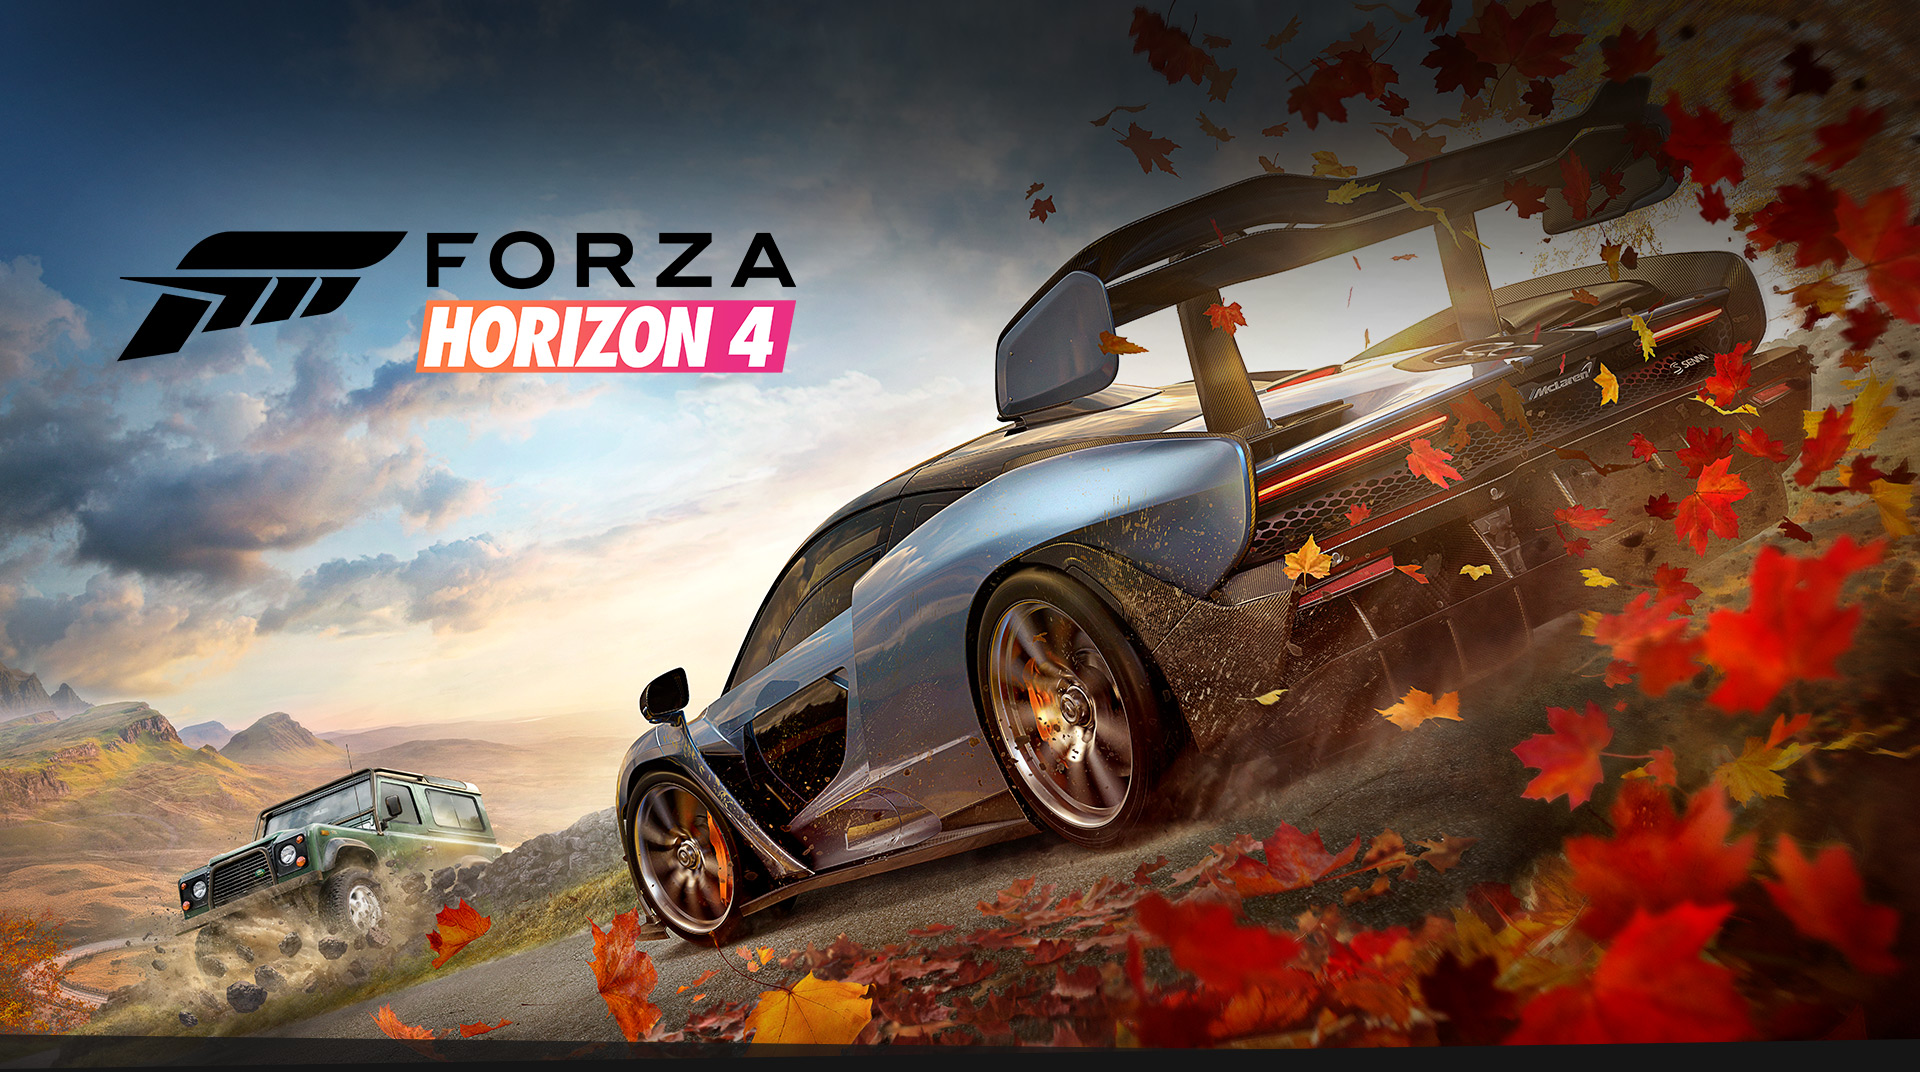 FORZA HORIZON 4 (PС) + ONLINE + SELFACTIVATION ✅